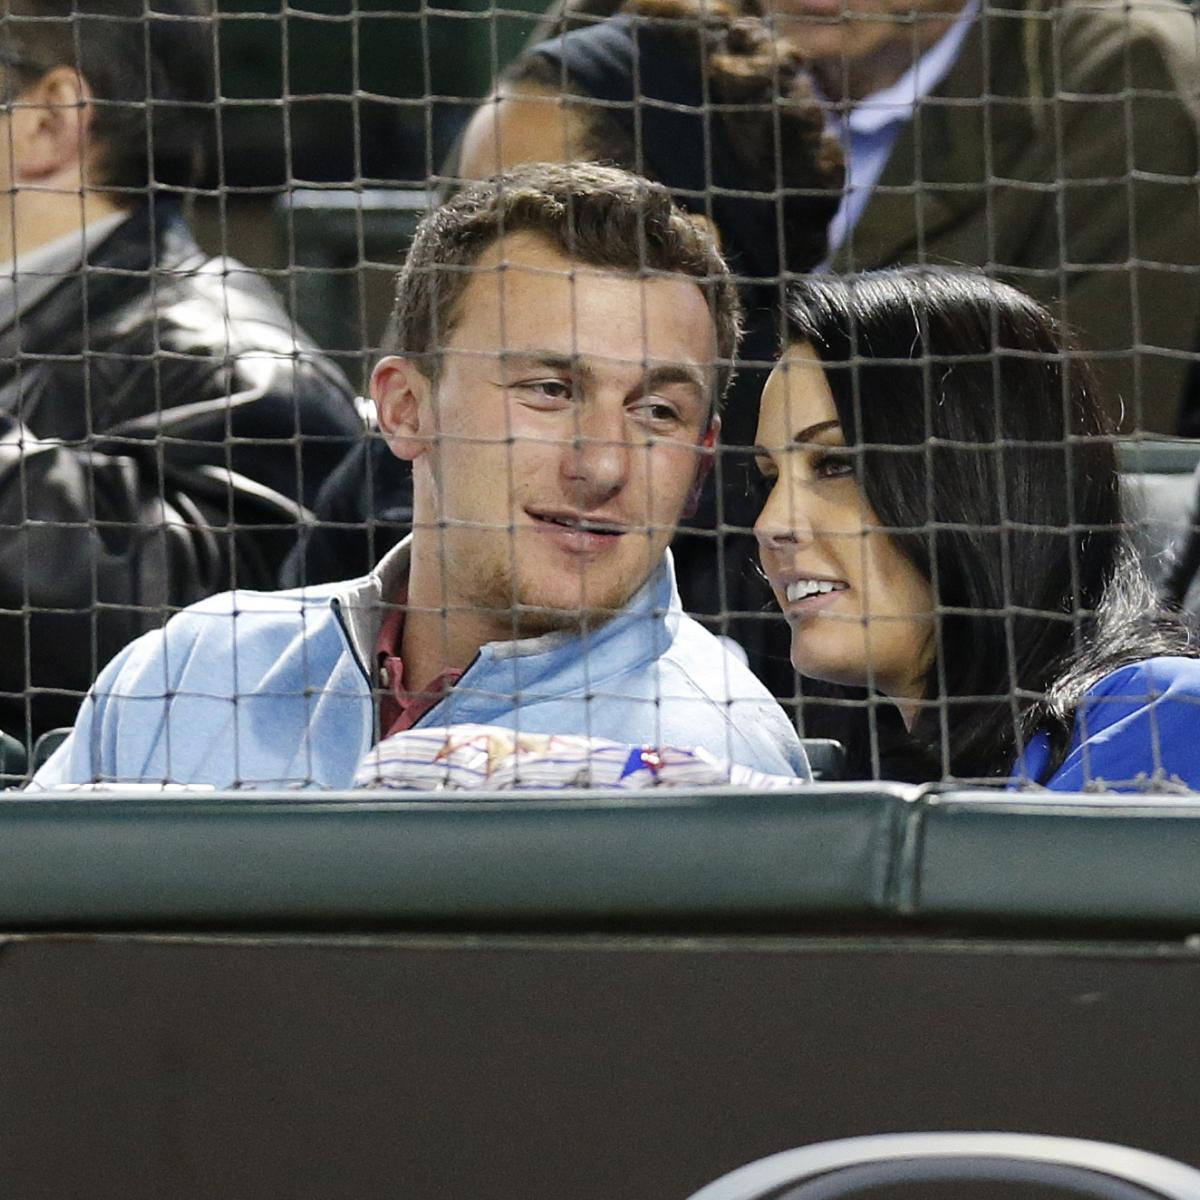 who was johnny manziel hanging out with at the texas